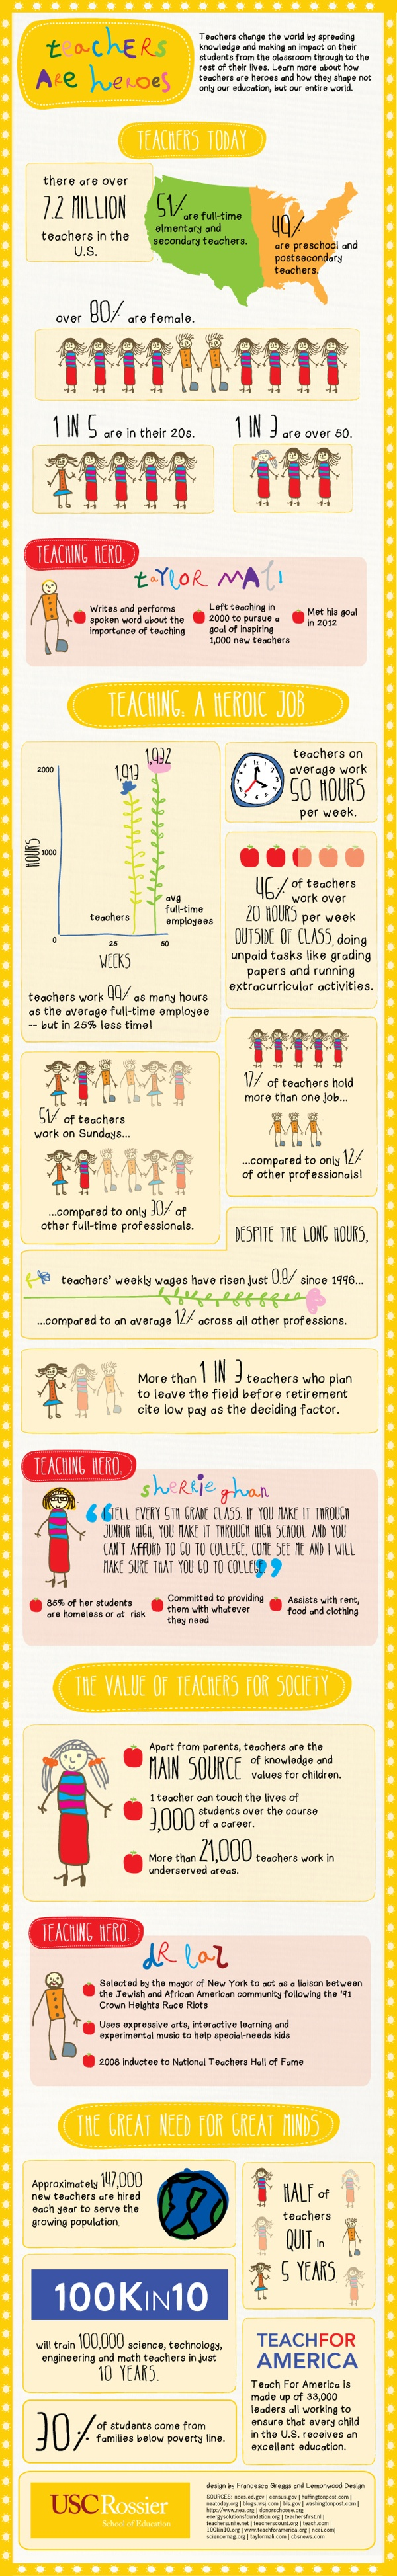 Teachers-Are-Heroes-Infographic